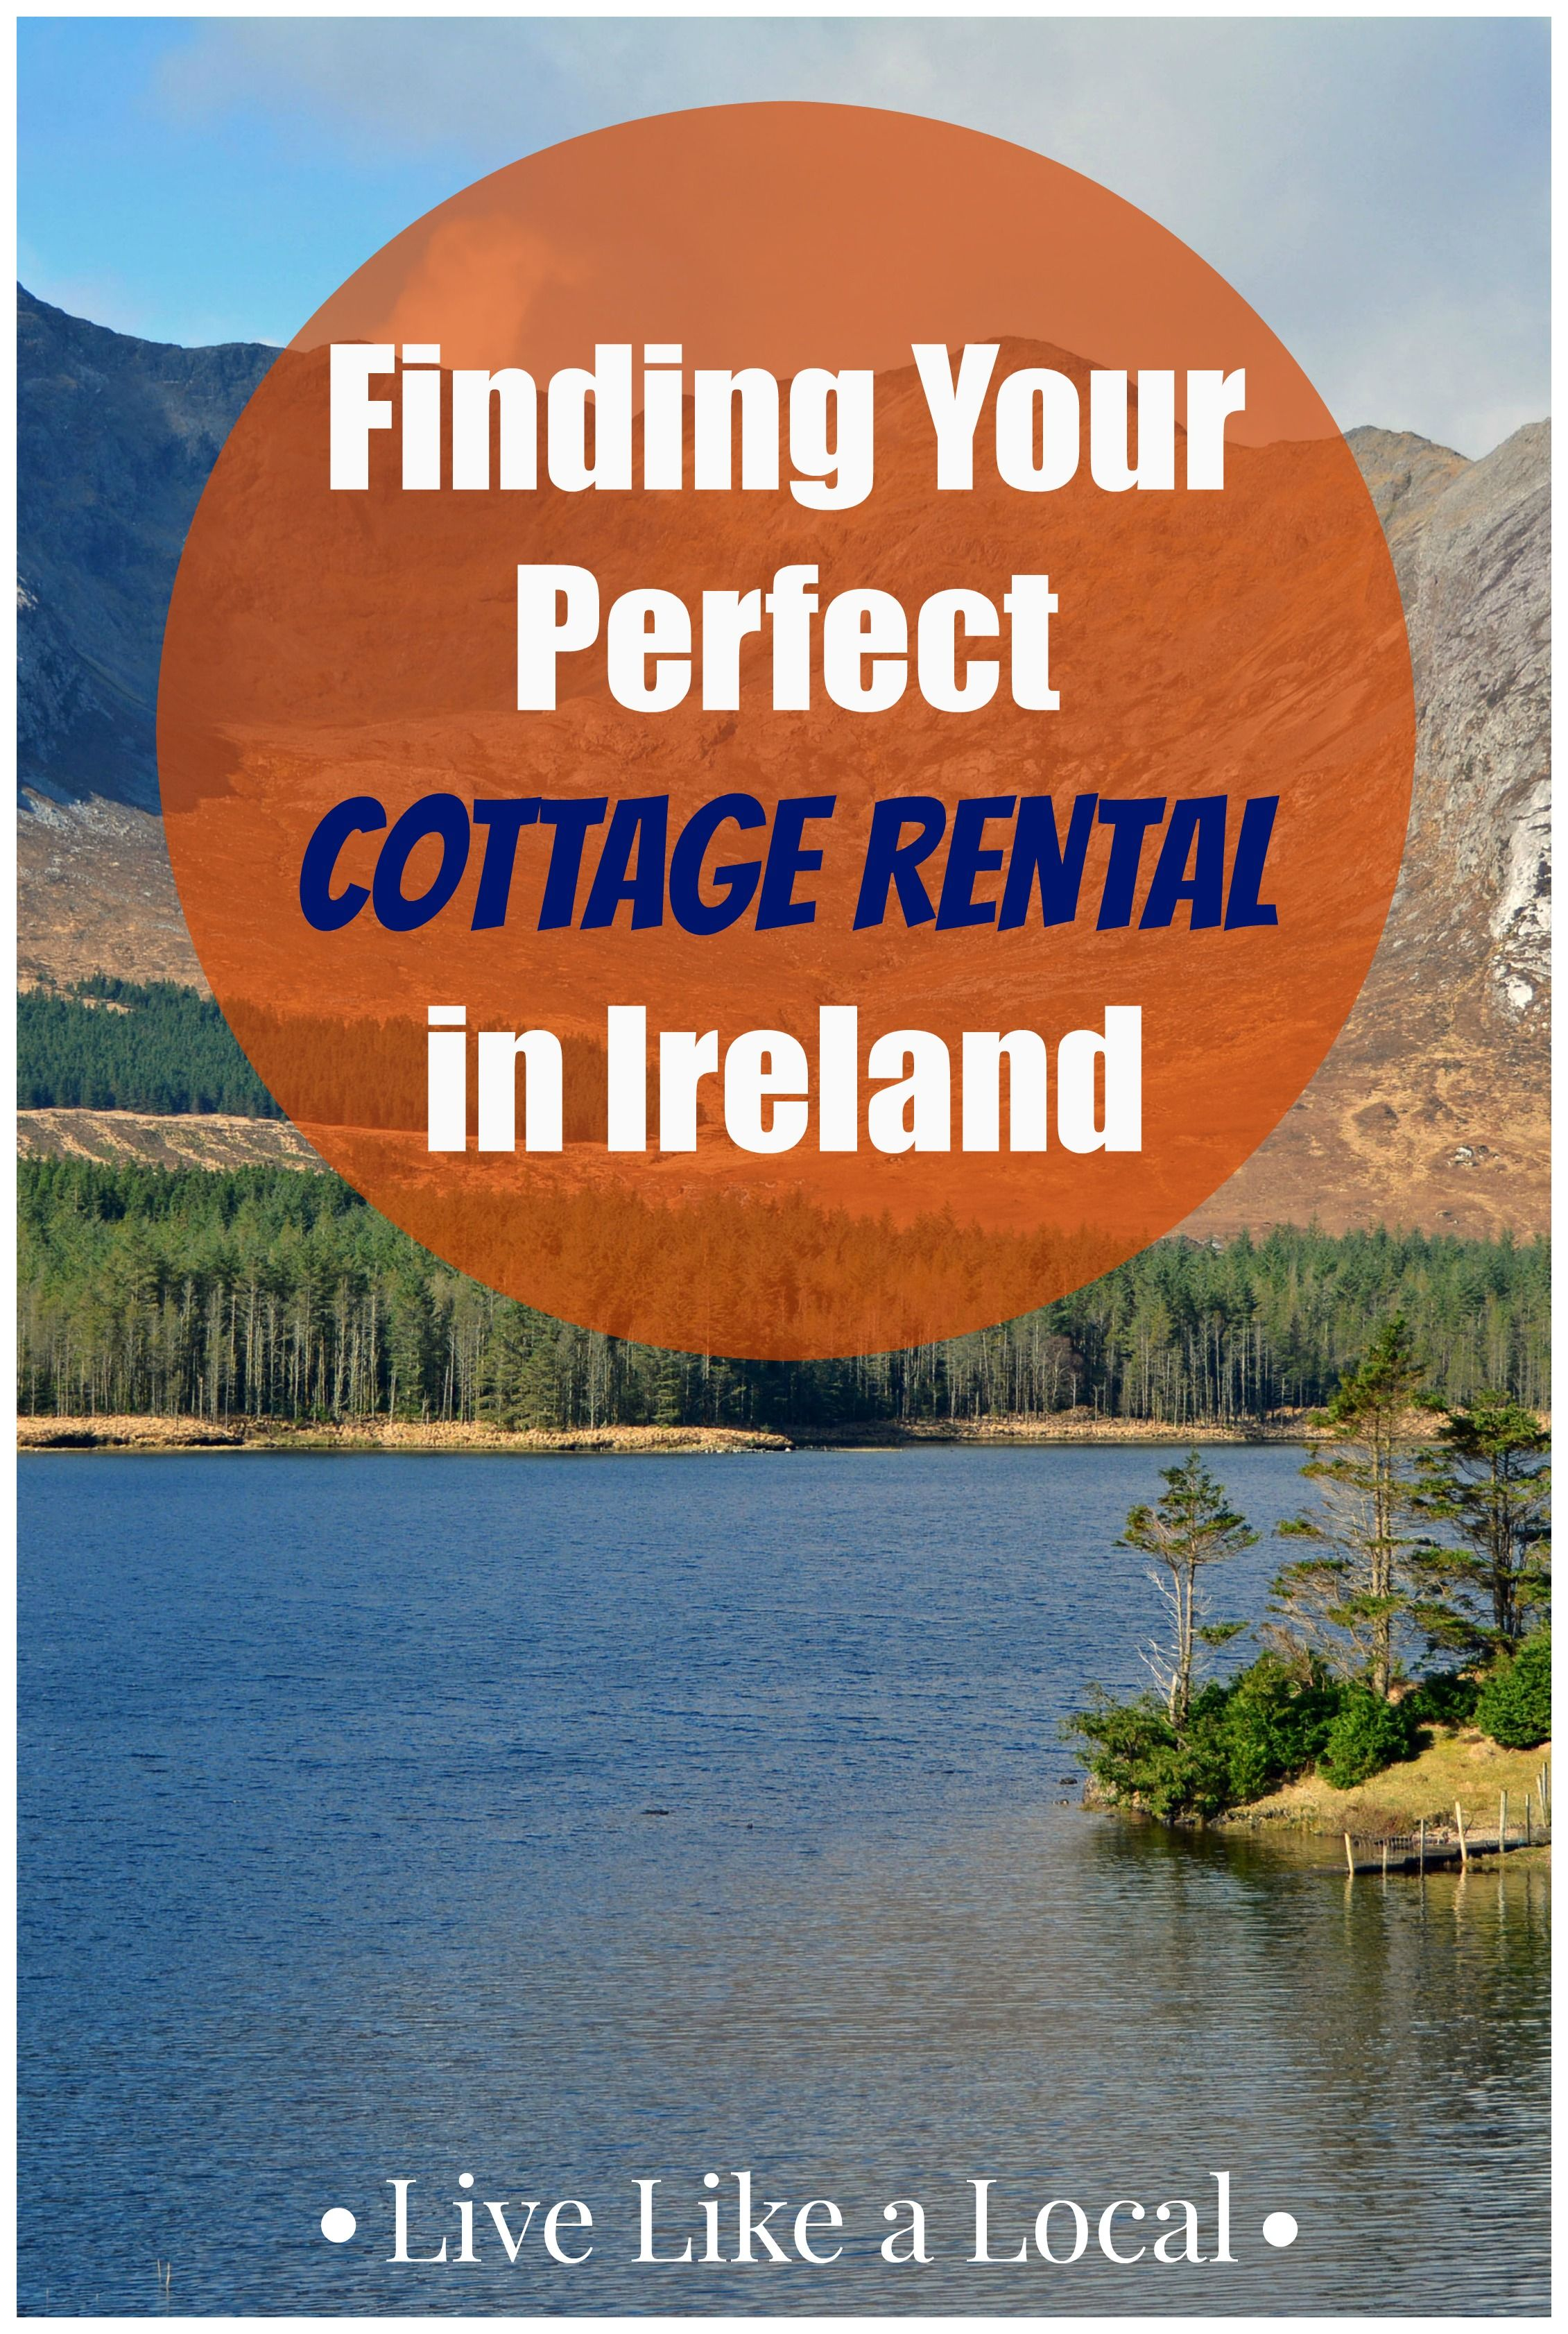 Rent a private cottage on your next visit to Ireland to experience ultimate comfort and local living.